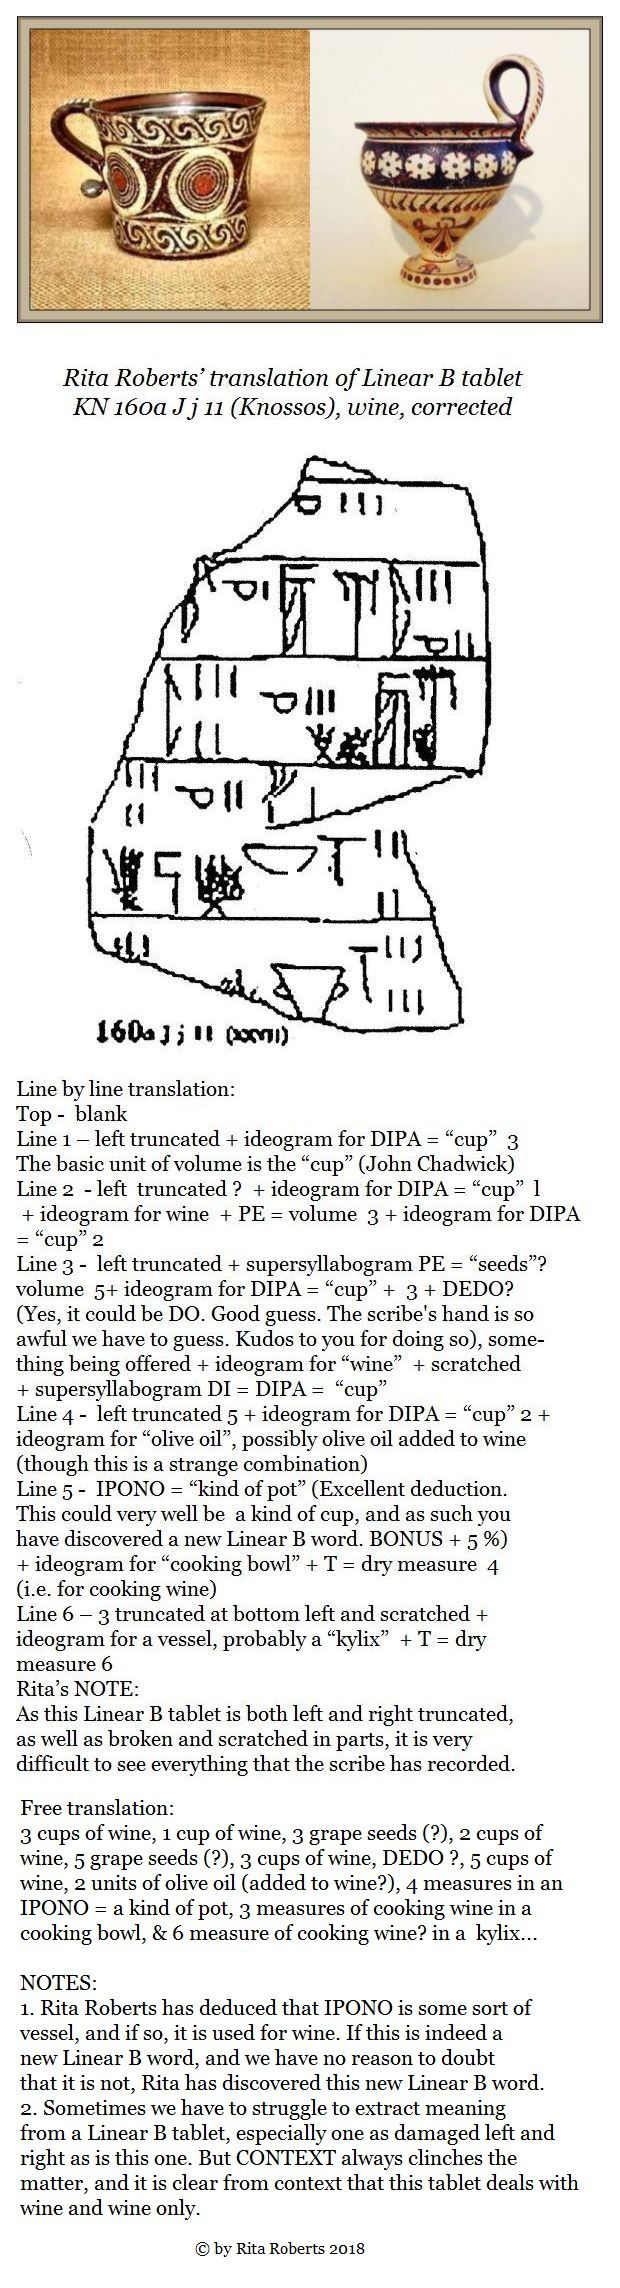 Linear B tablet KN 160a J j 11 wine